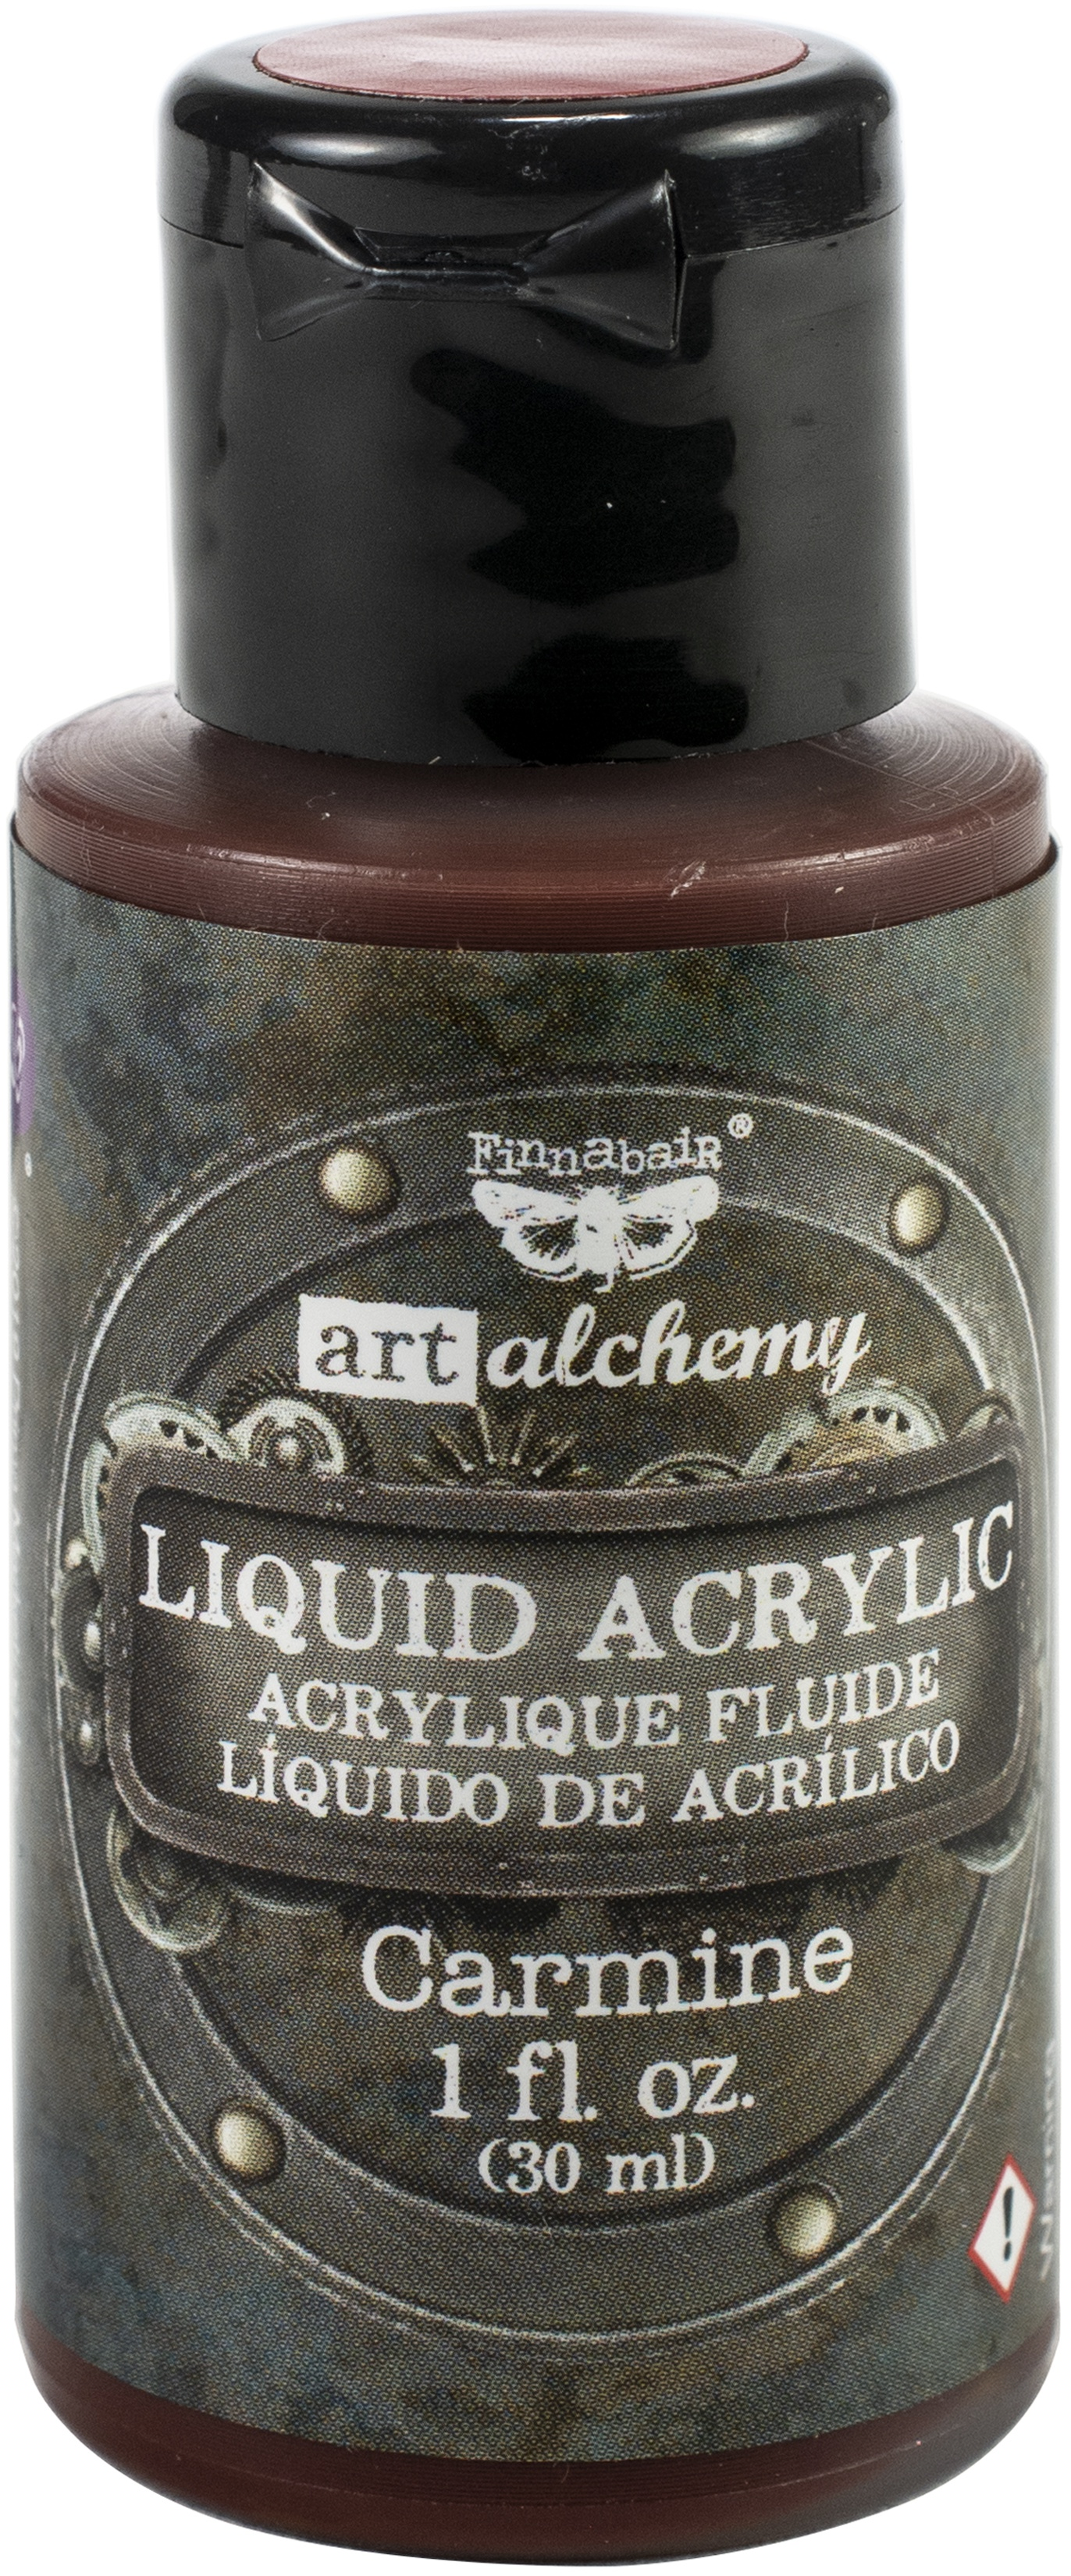 Finnabair Art Alchemy Liquid Acrylic Paint 1 Fluid Ounce-Carmine